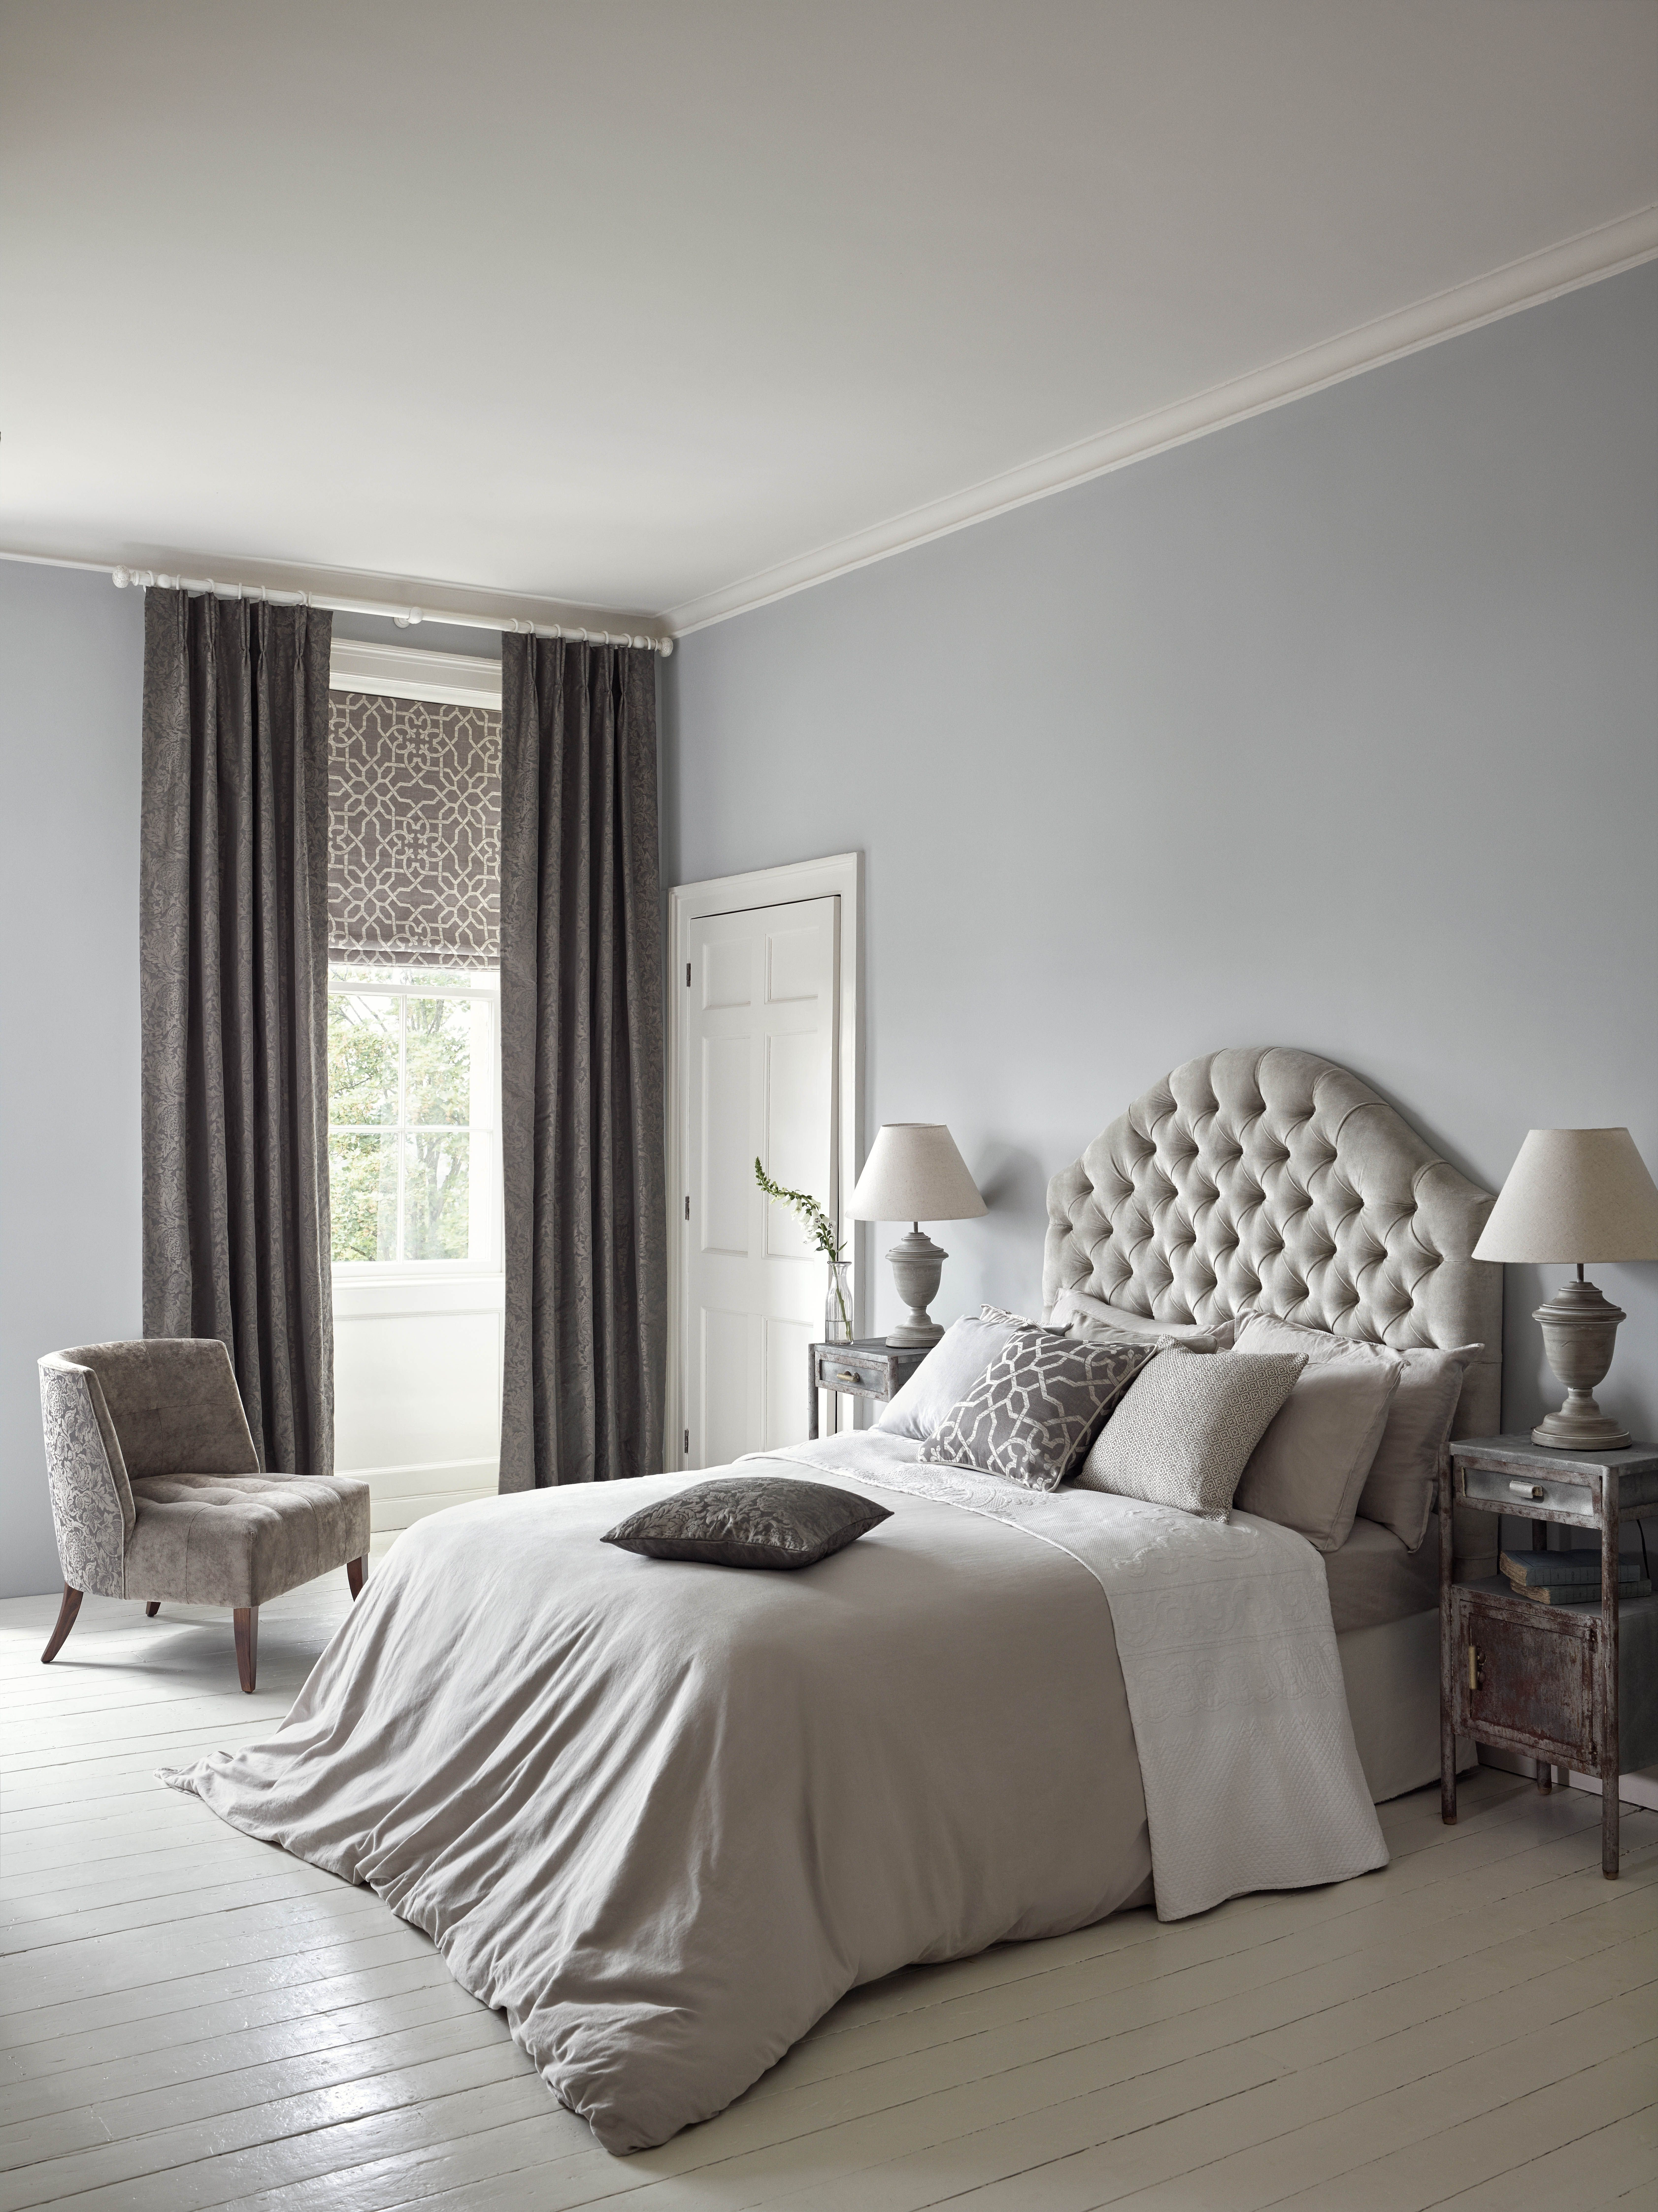 Pin by Just So Interiors on Just So Fabrics & Wallpapers